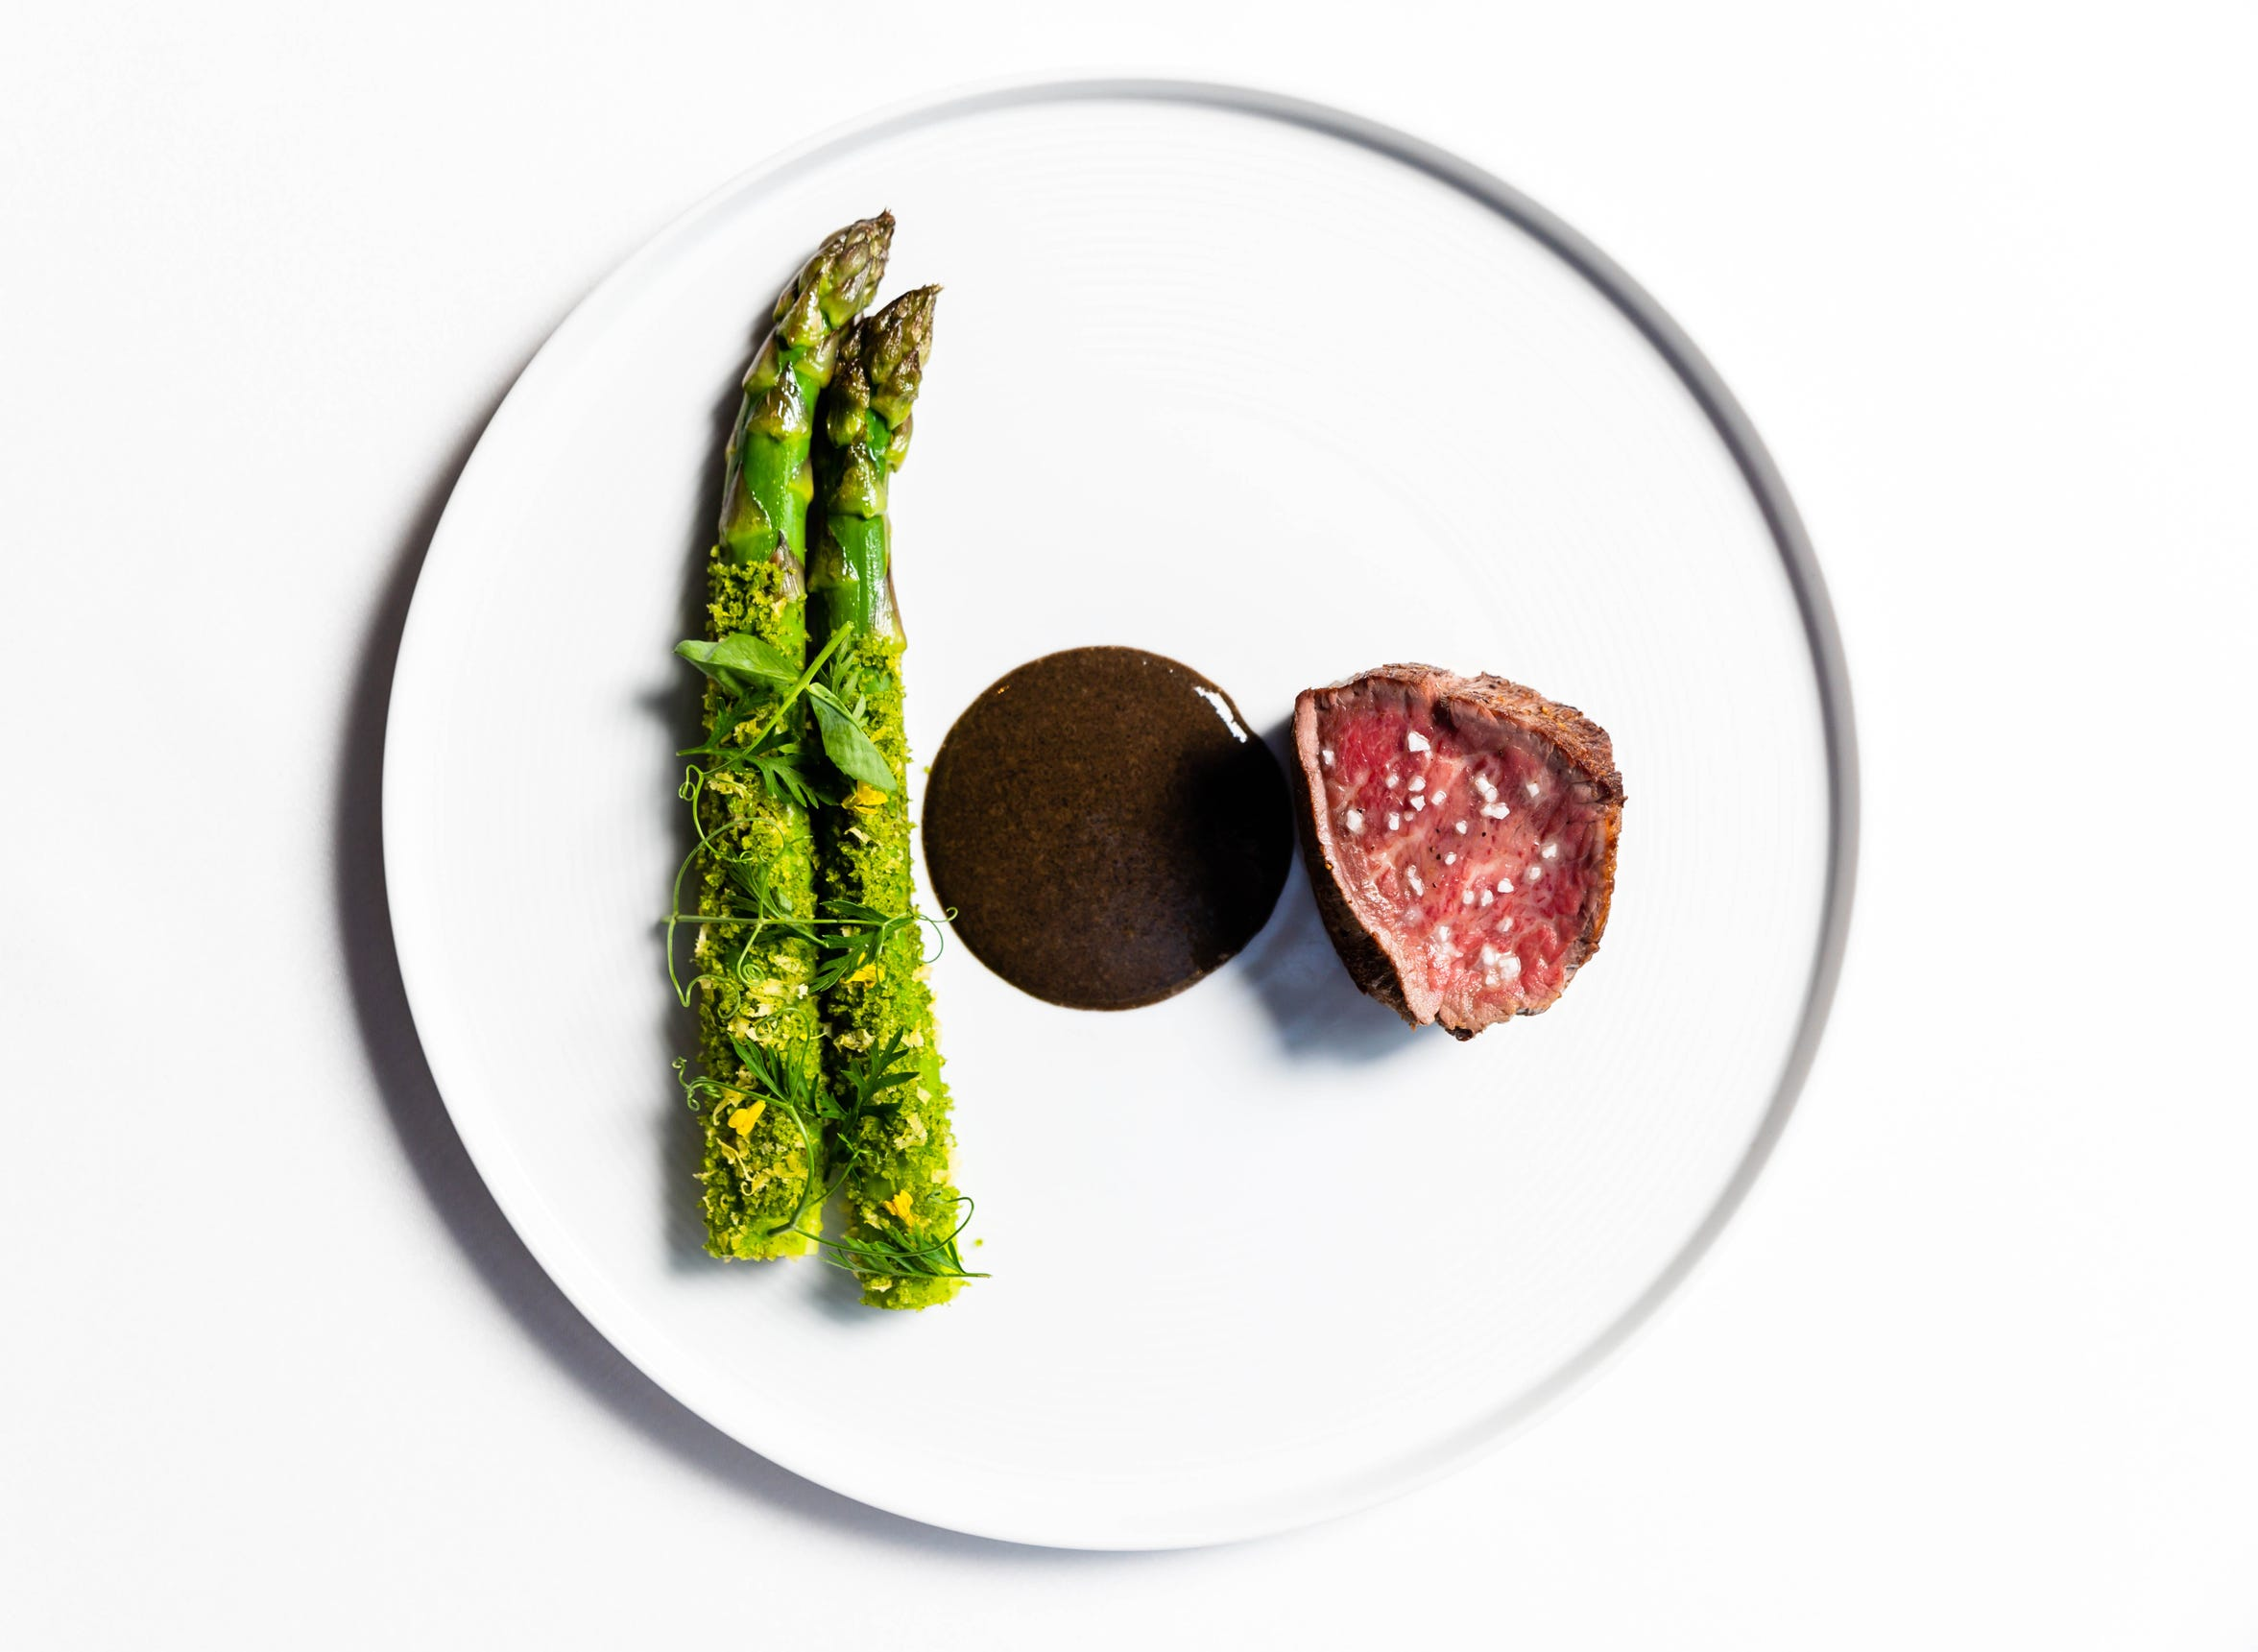 Beef, asparagus, cured egg yolk, chard, onion bordelaise as served at Restaurant Eugene in May 2019, shortly before the restaurant closed after 15 years of operations. (Courtesy Hopkins & Co.)